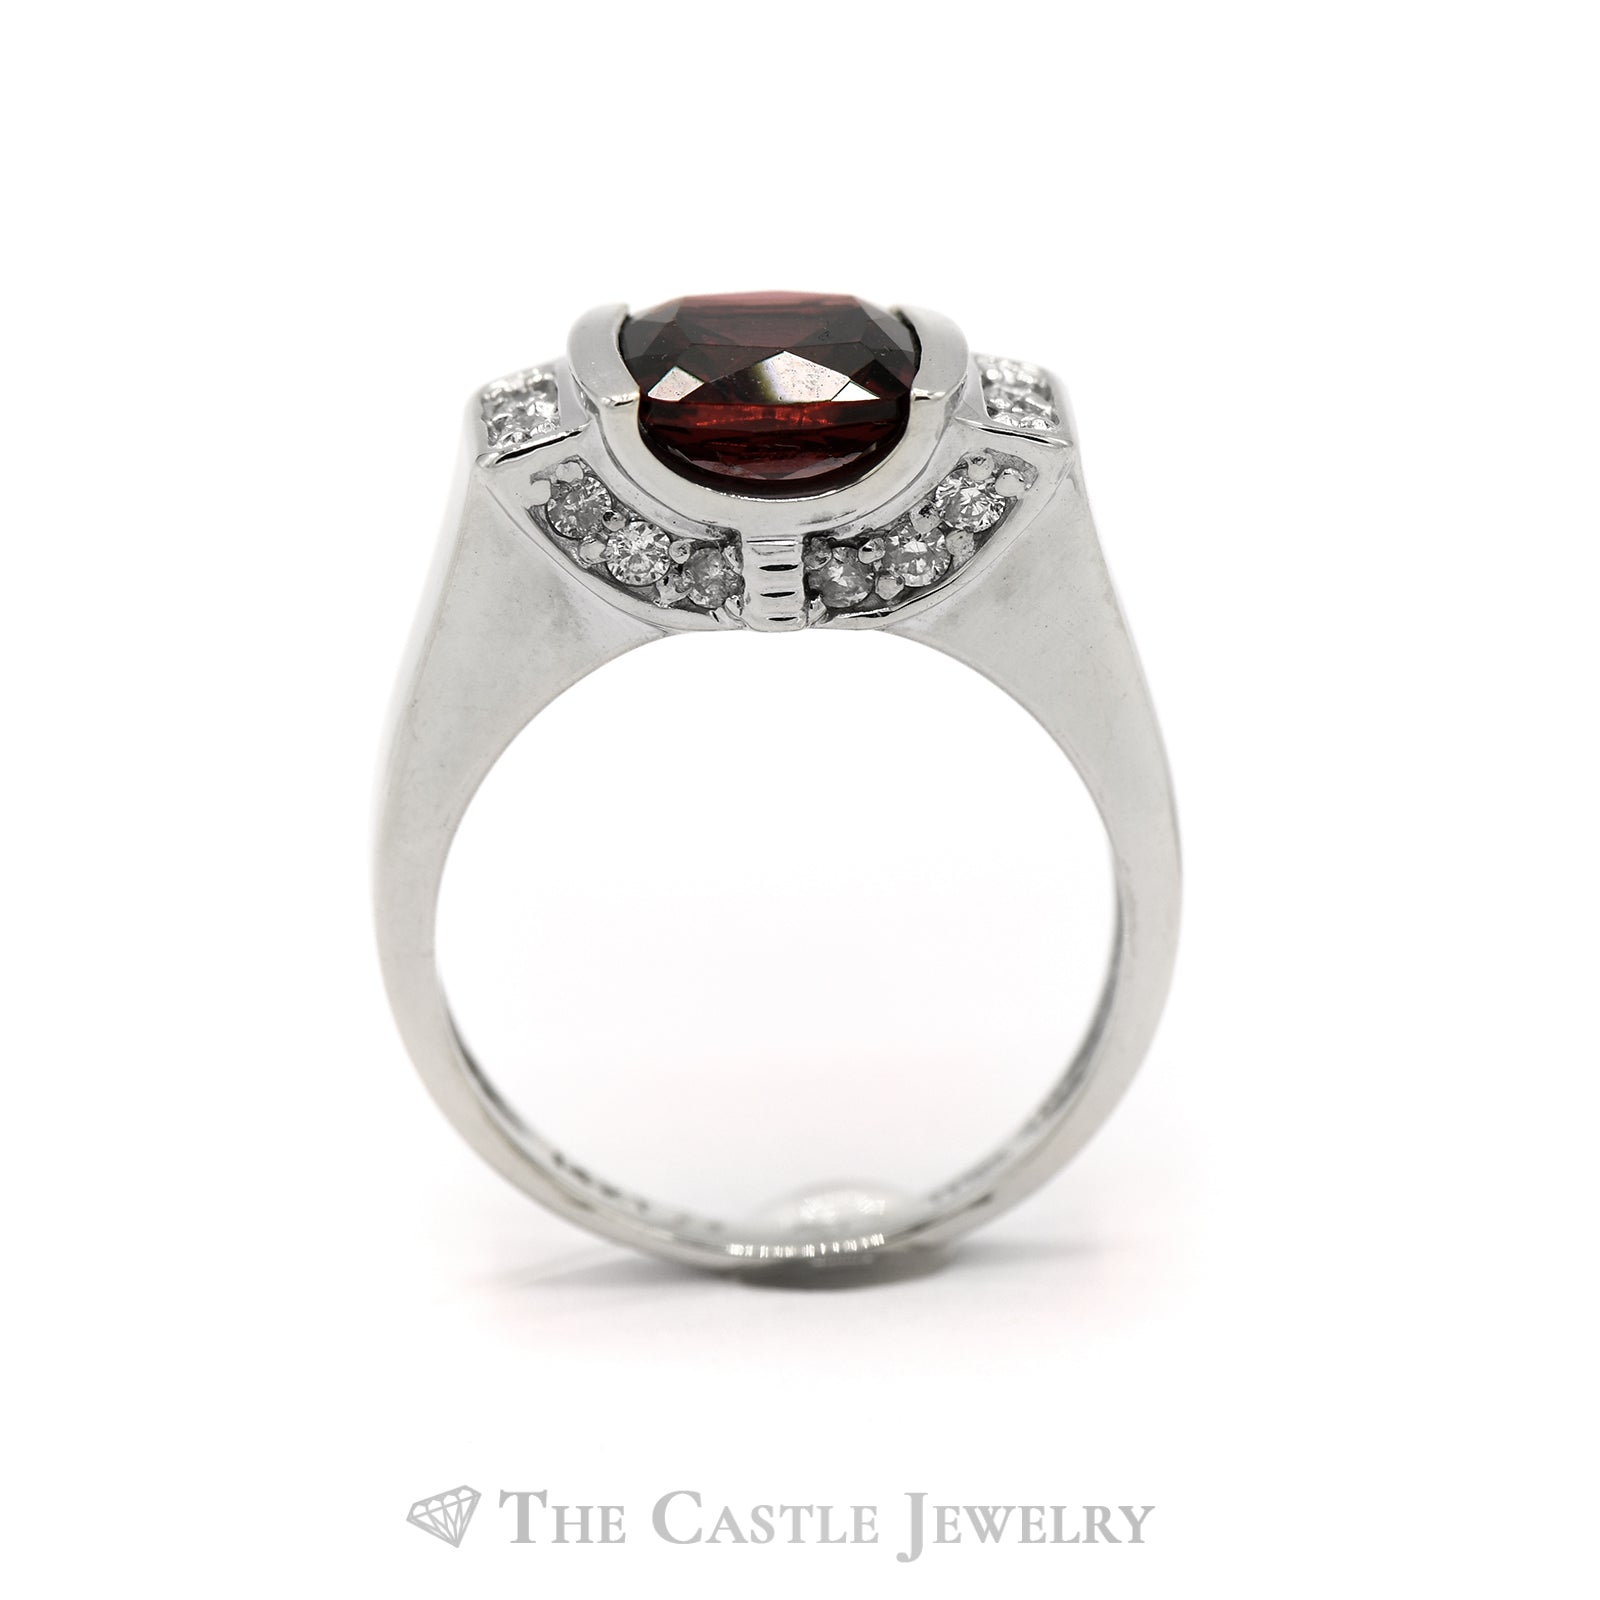 Cushion Cut Garnet and Diamond Ring in 14KT White Gold-1